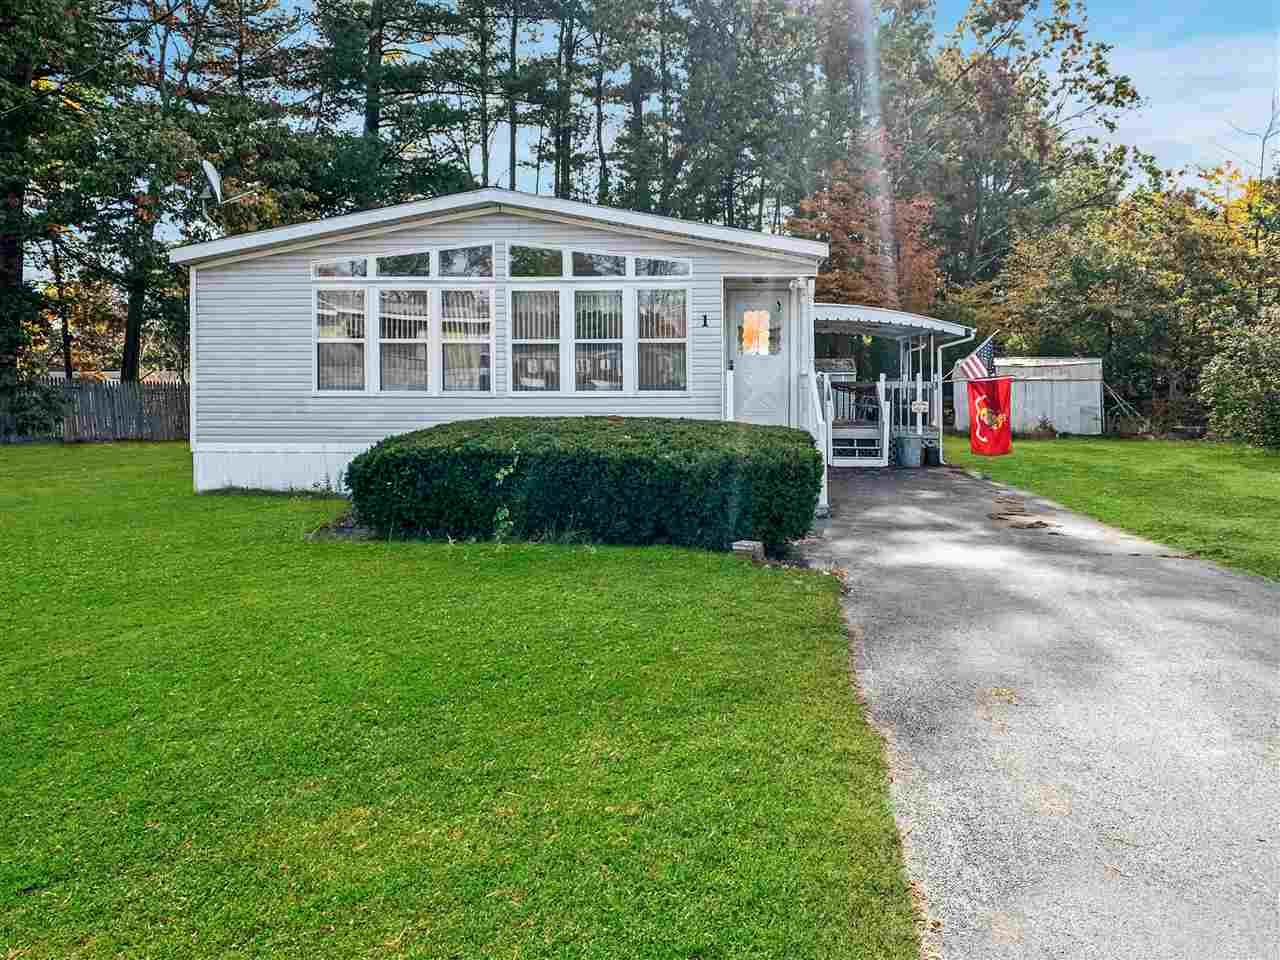 MLS 4788346: 1 Longwood Lane, Merrimack NH